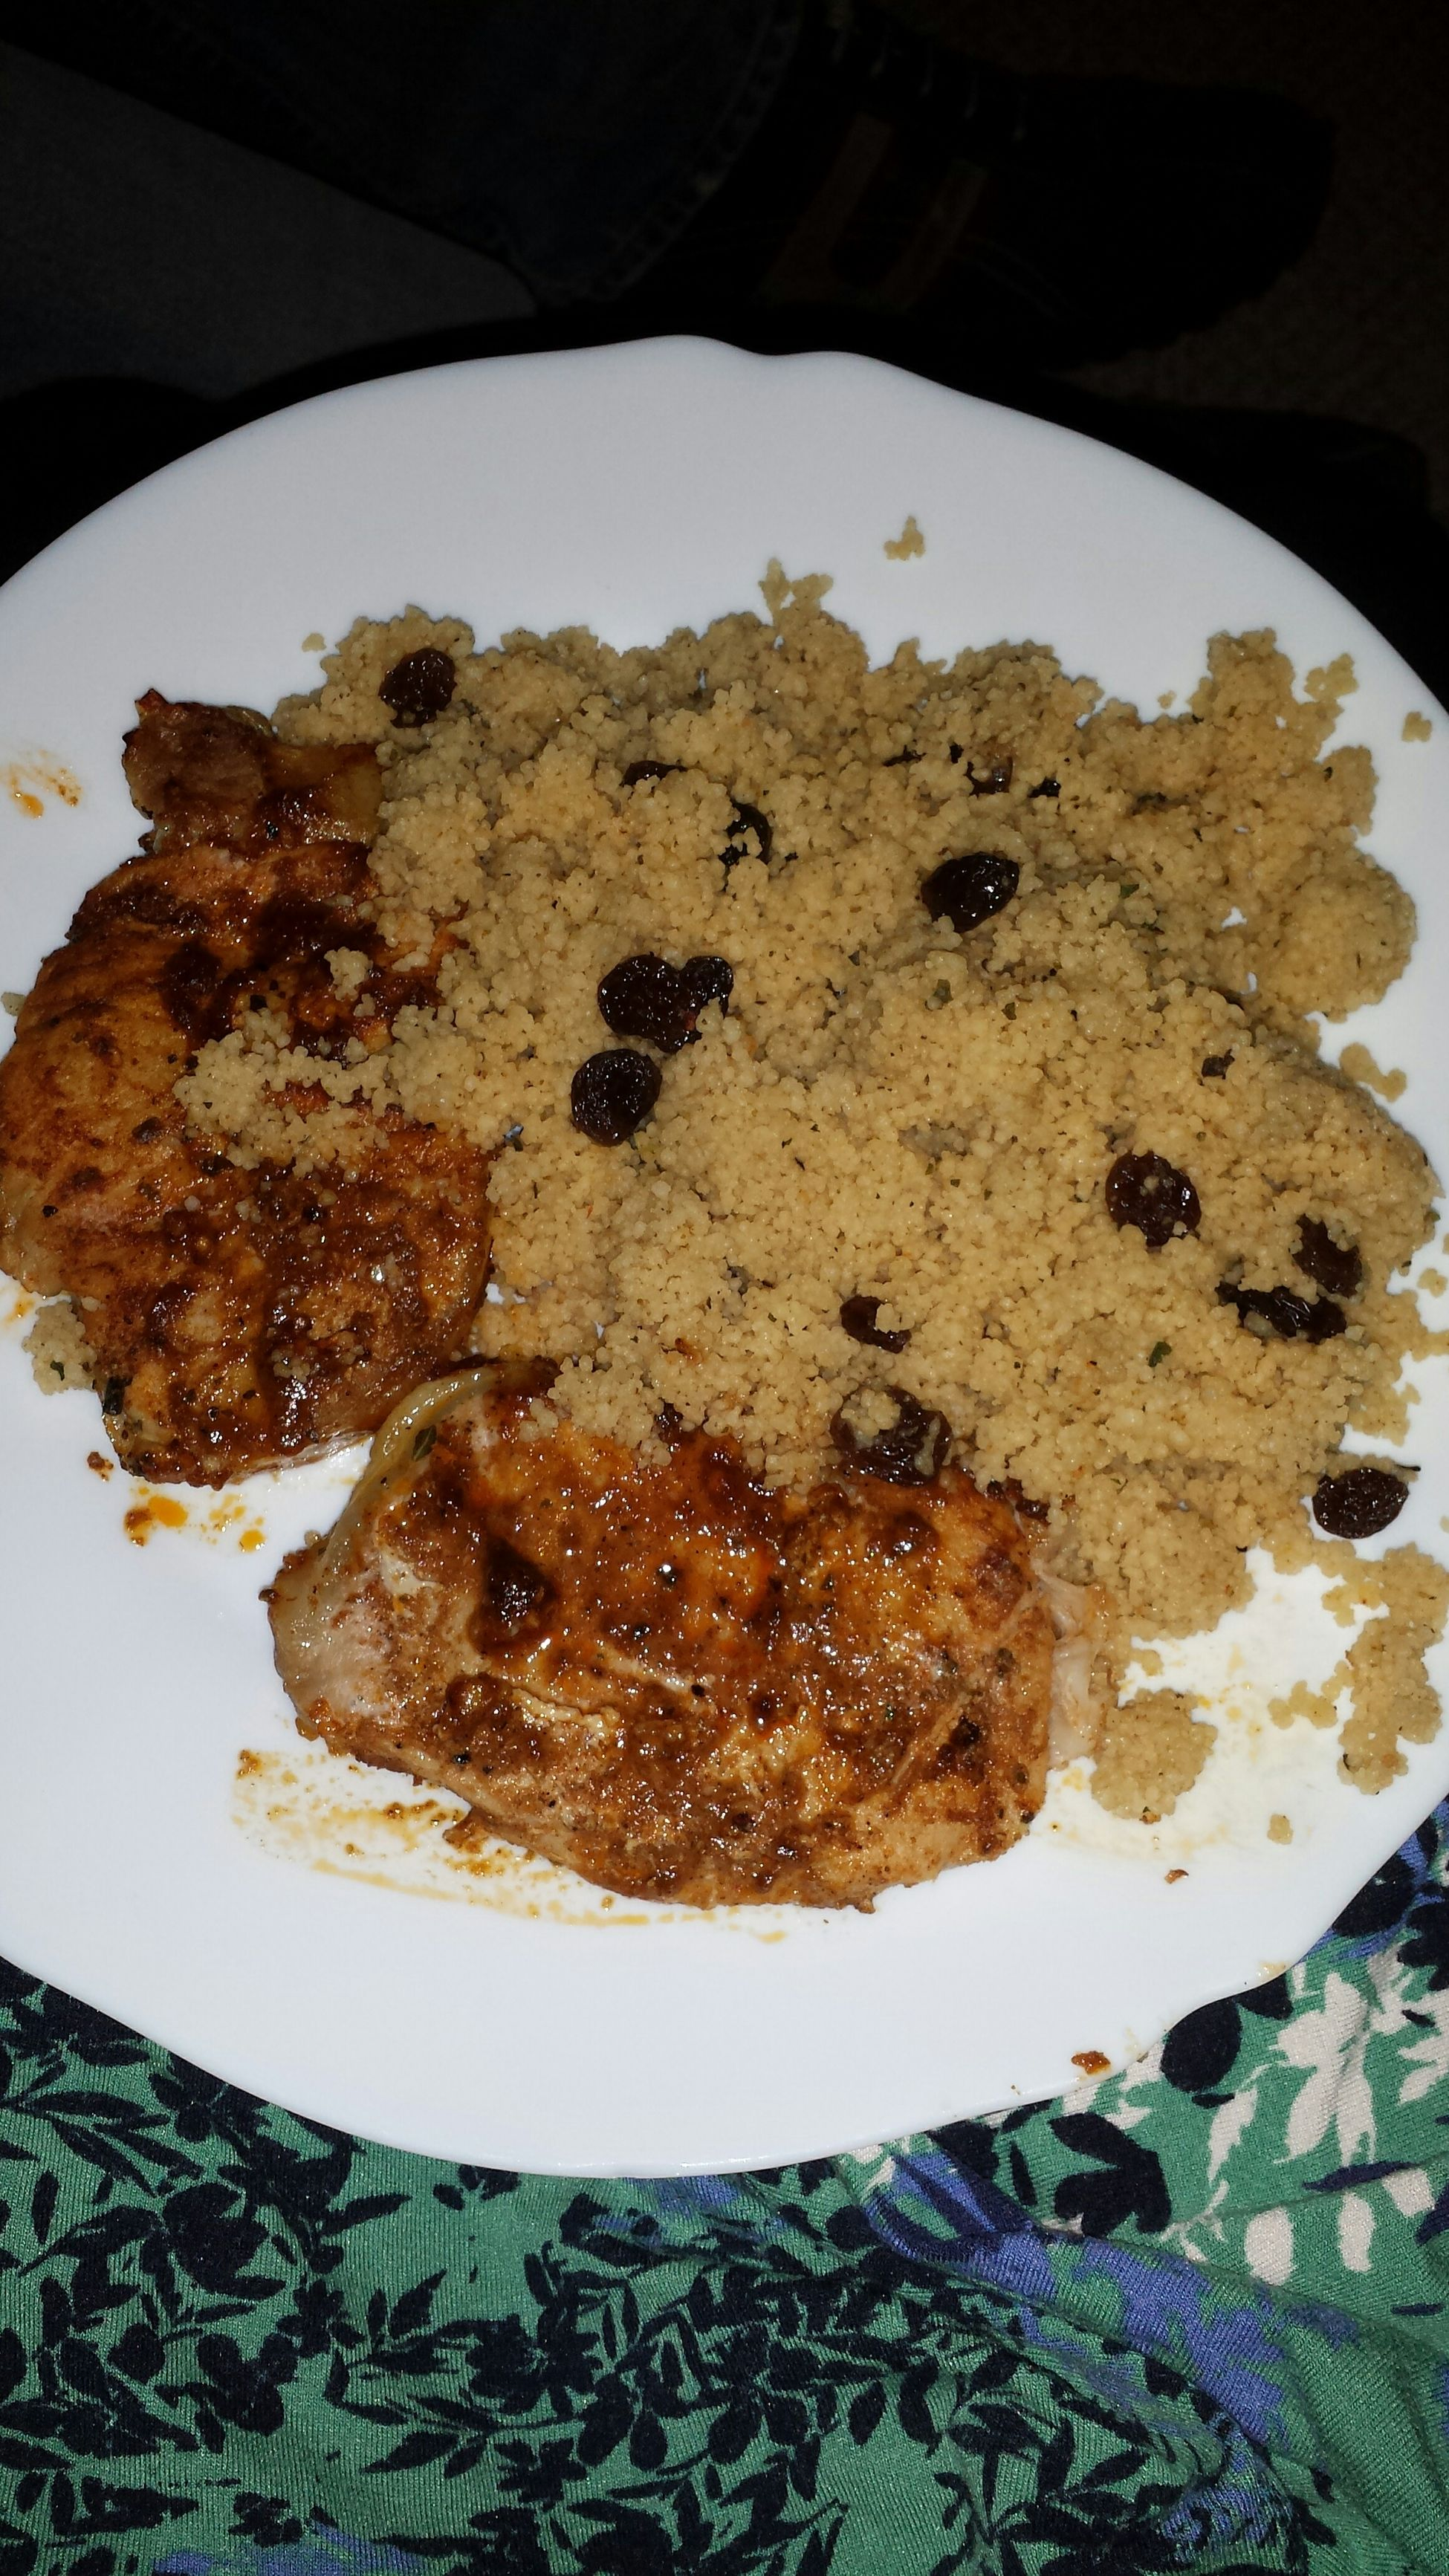 Whats For Dinner? Morrocan pork and couscous